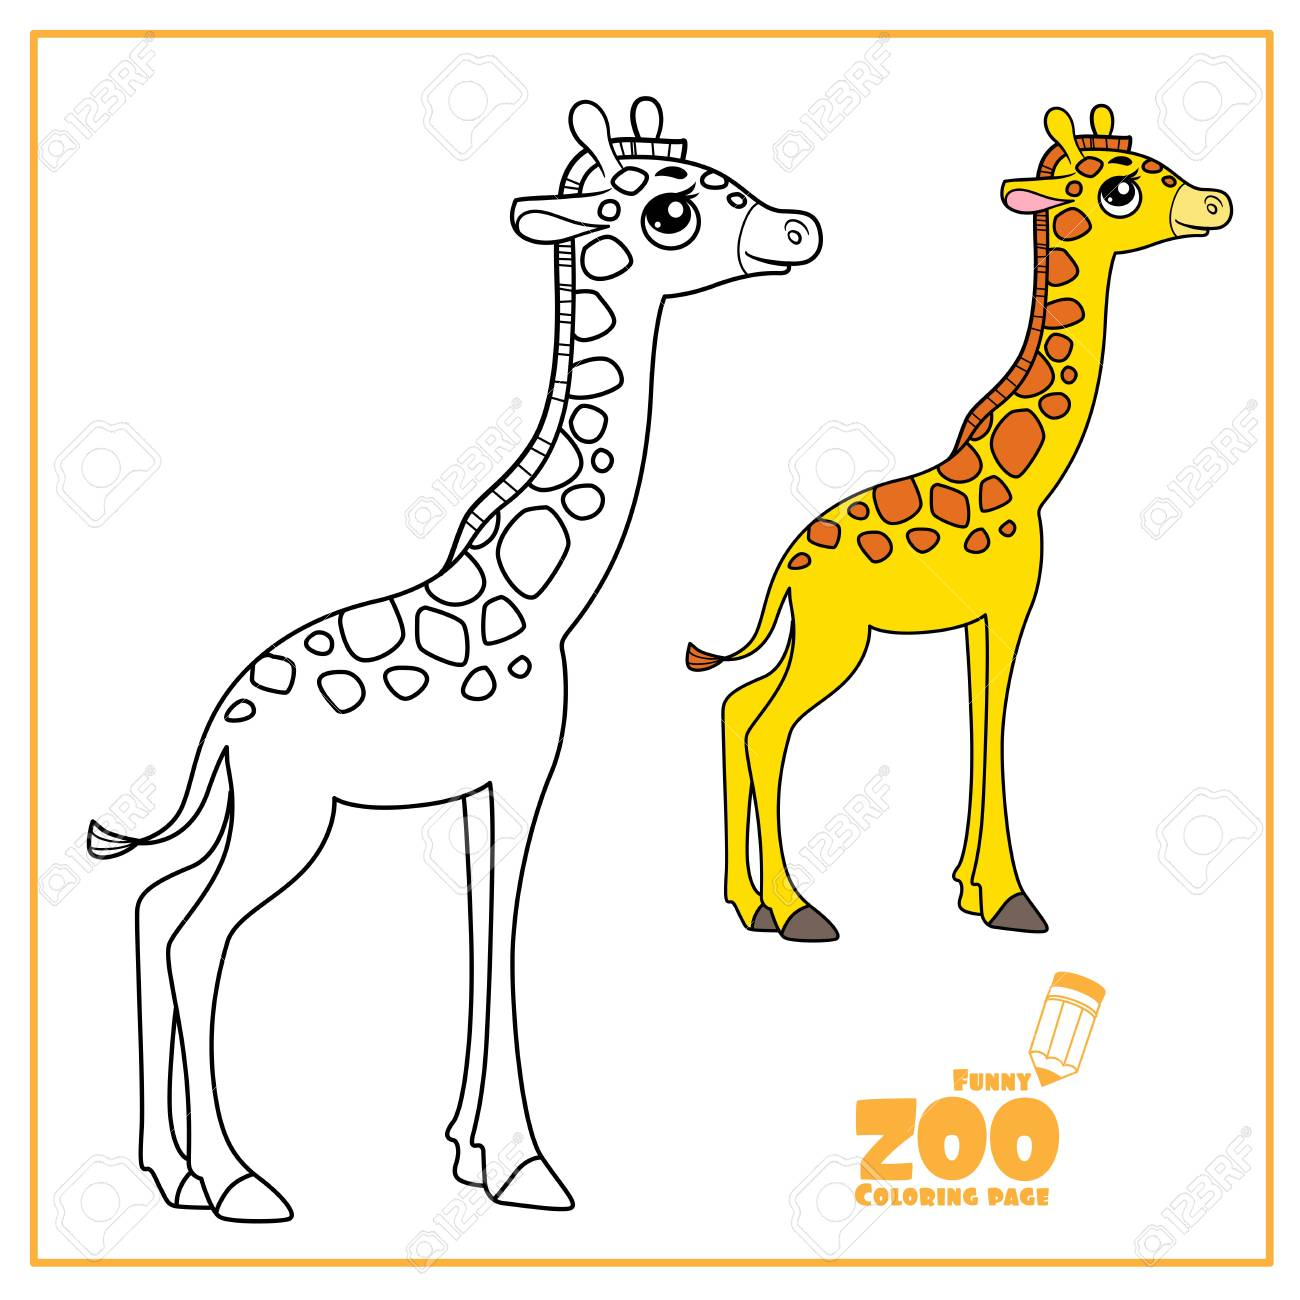 Cute cartoon little giraffe color and outlined on a white for coloring page - 124972971